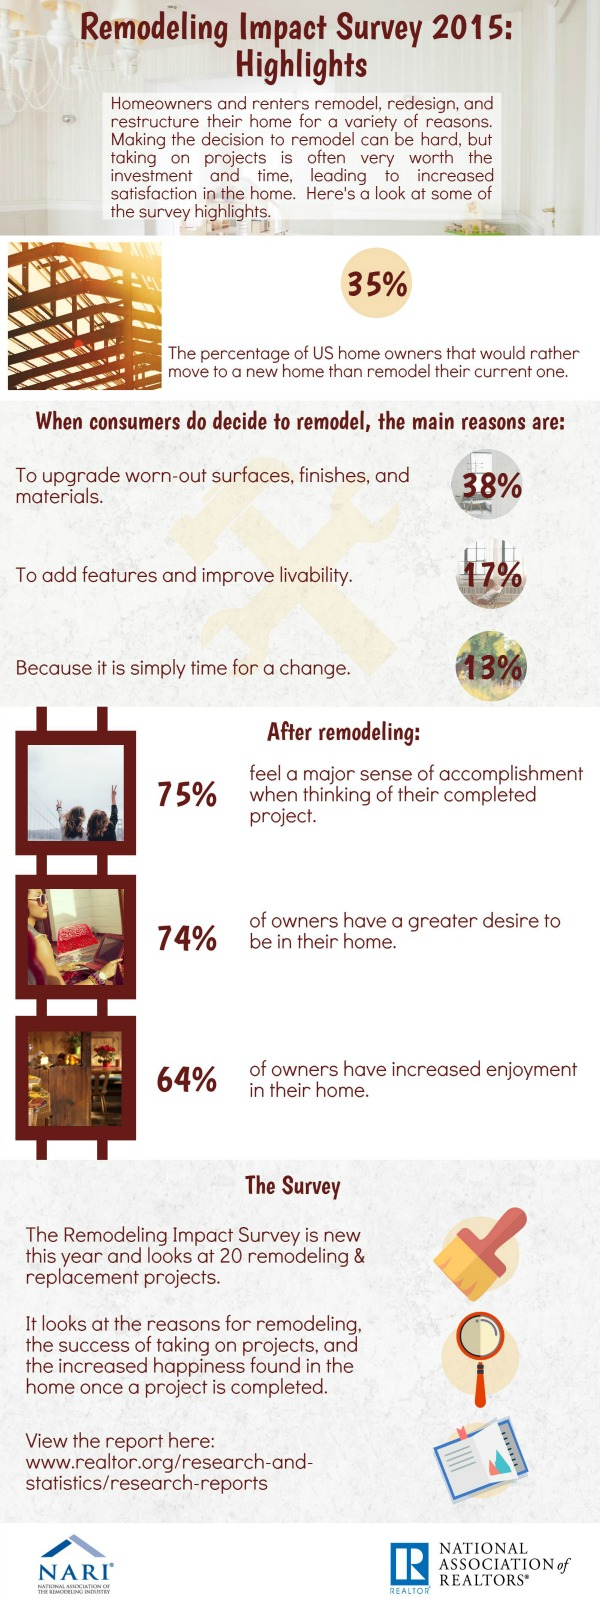 Homeowners Reap Remodeling Benefits Whether Selling or Staying, Say Realtors®